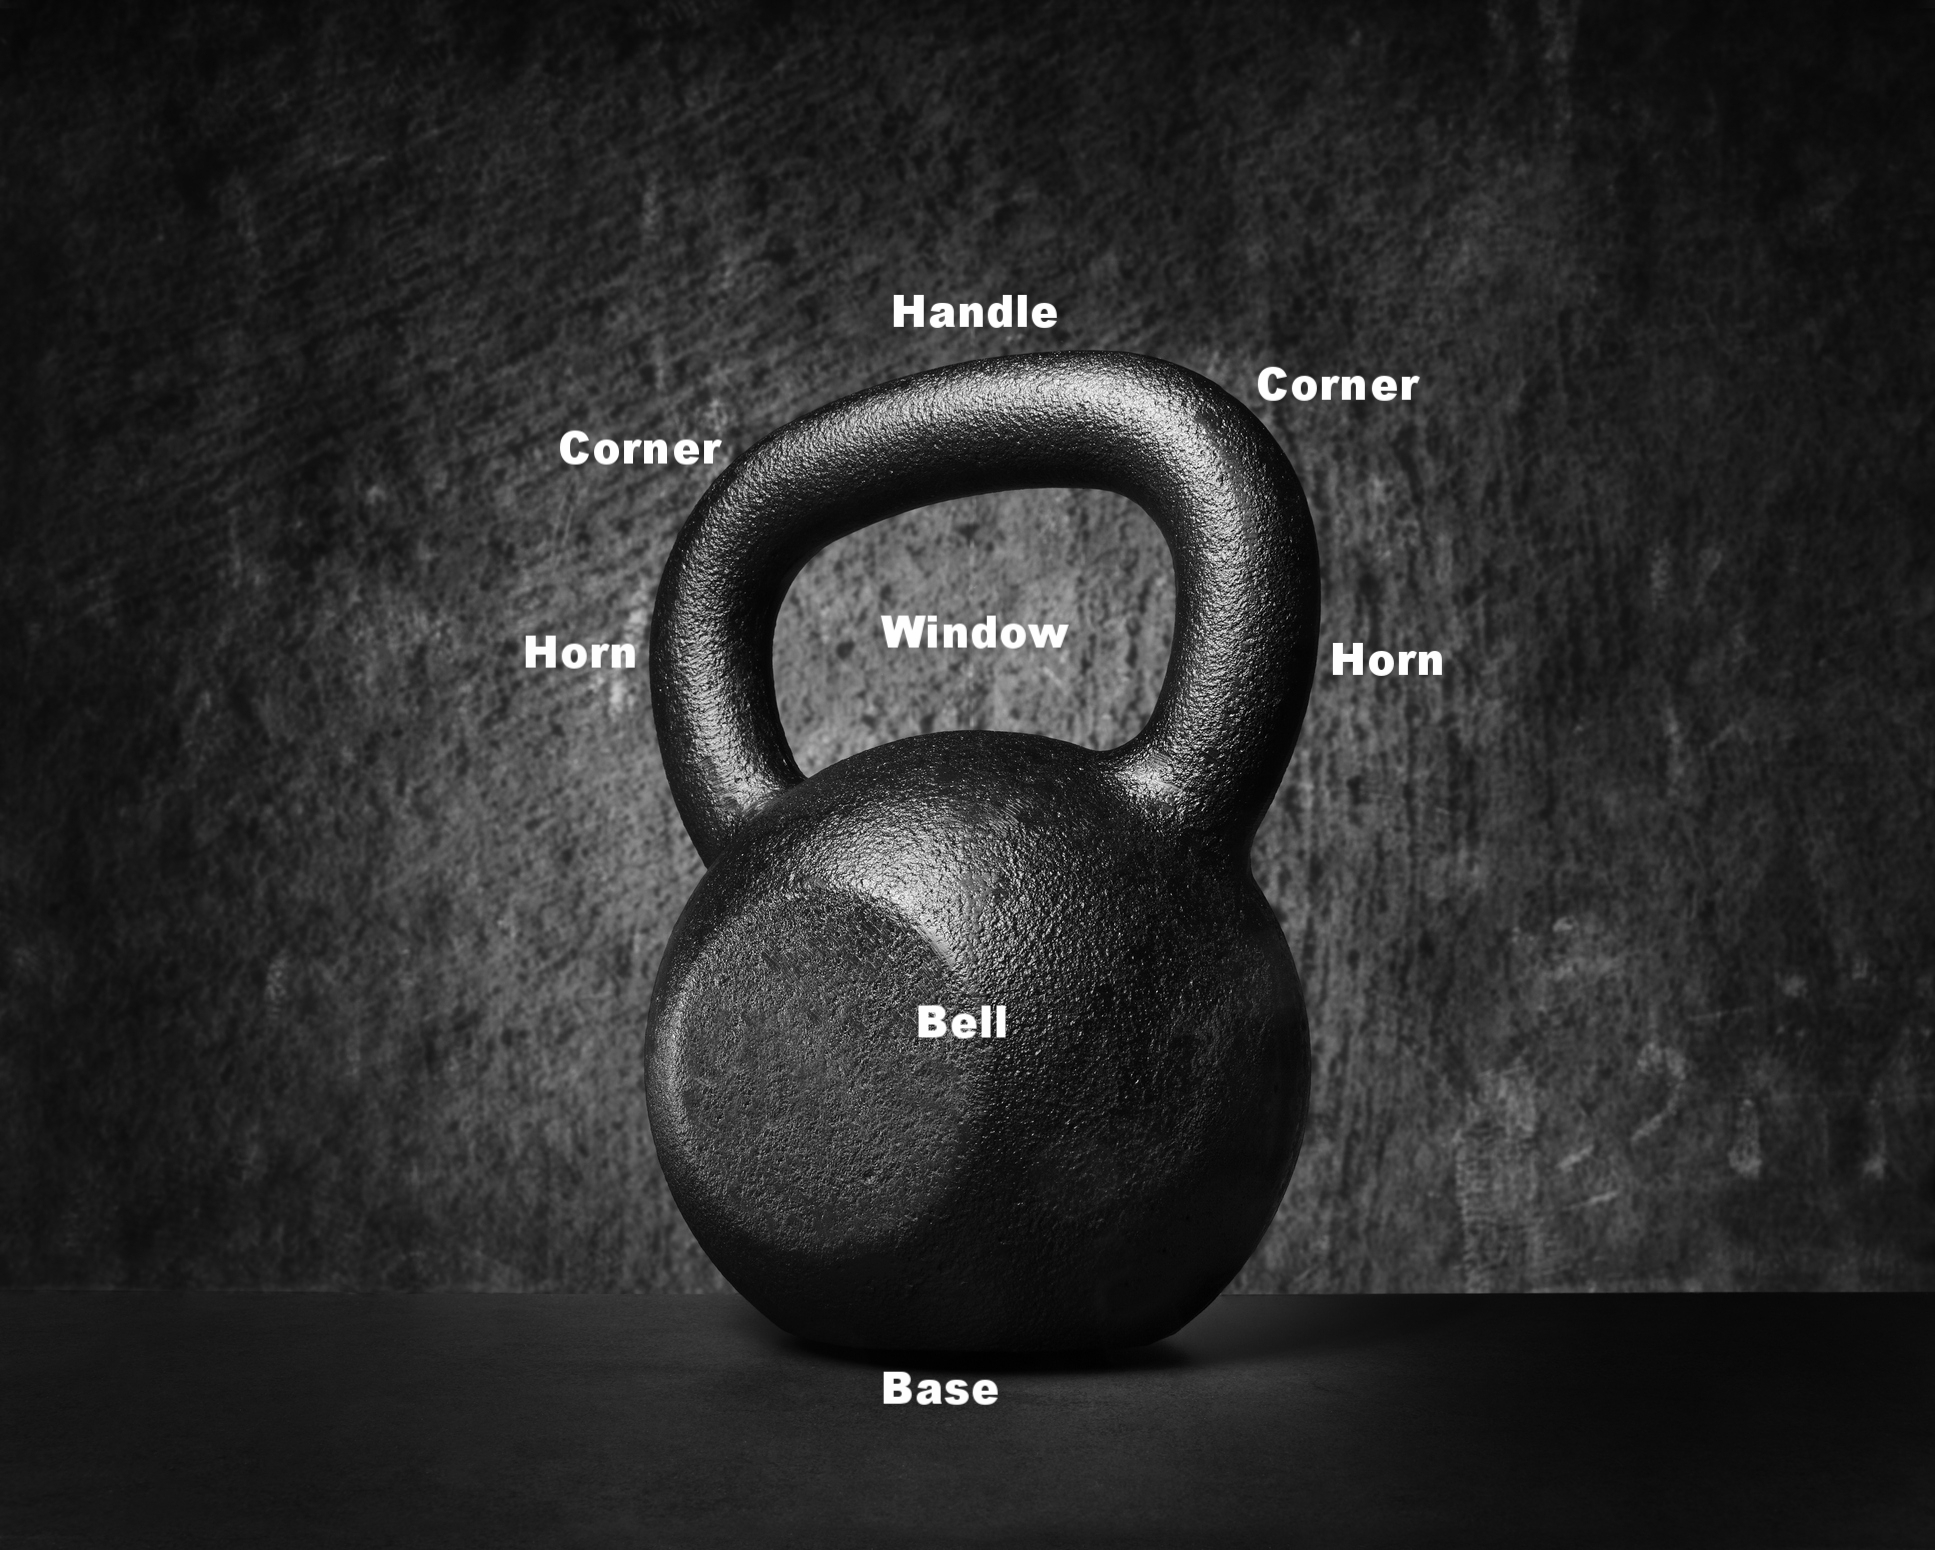 Anatomy of a Kettlebell